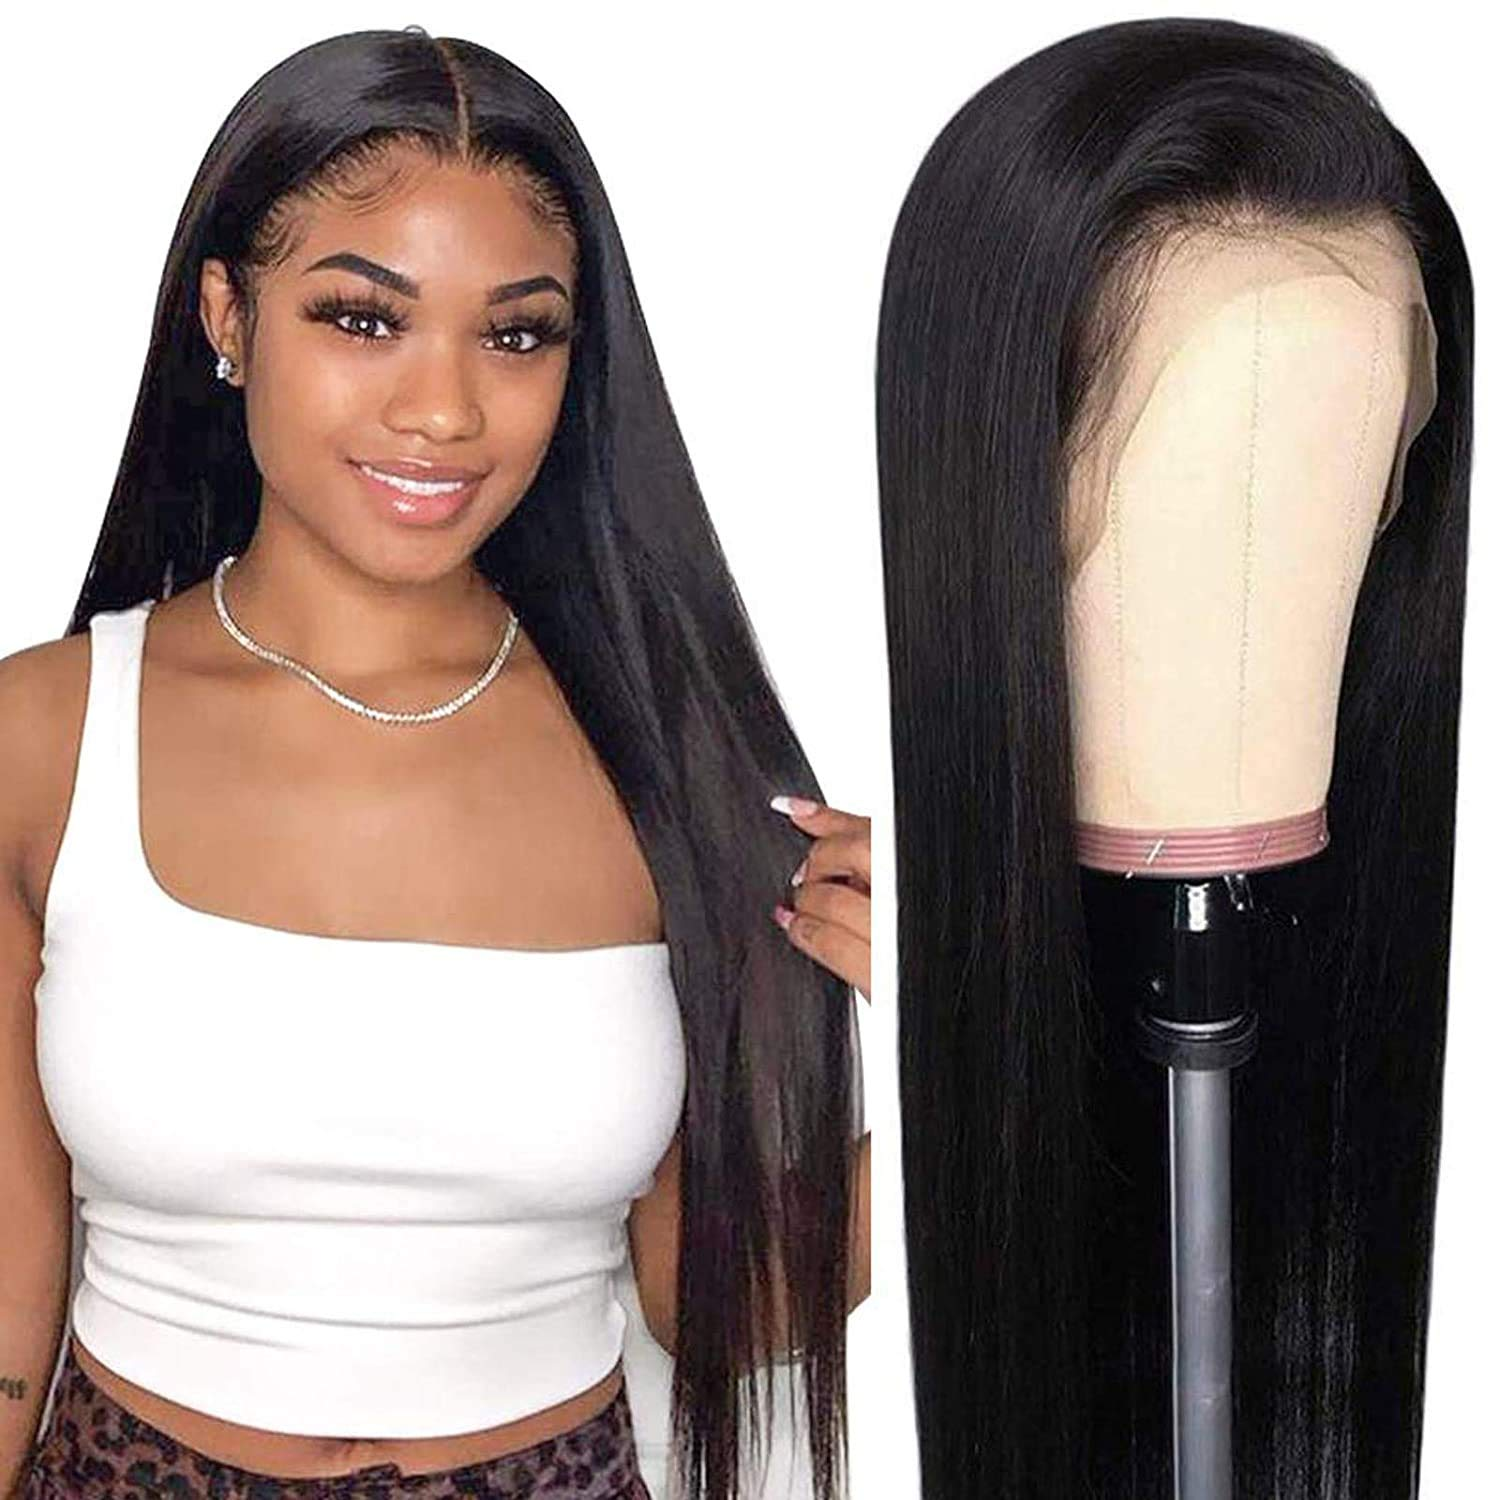 Imeya Wig 13X6 HD Transparent Lace Front Black Same day shipping Pr Max 49% OFF Women For Wigs